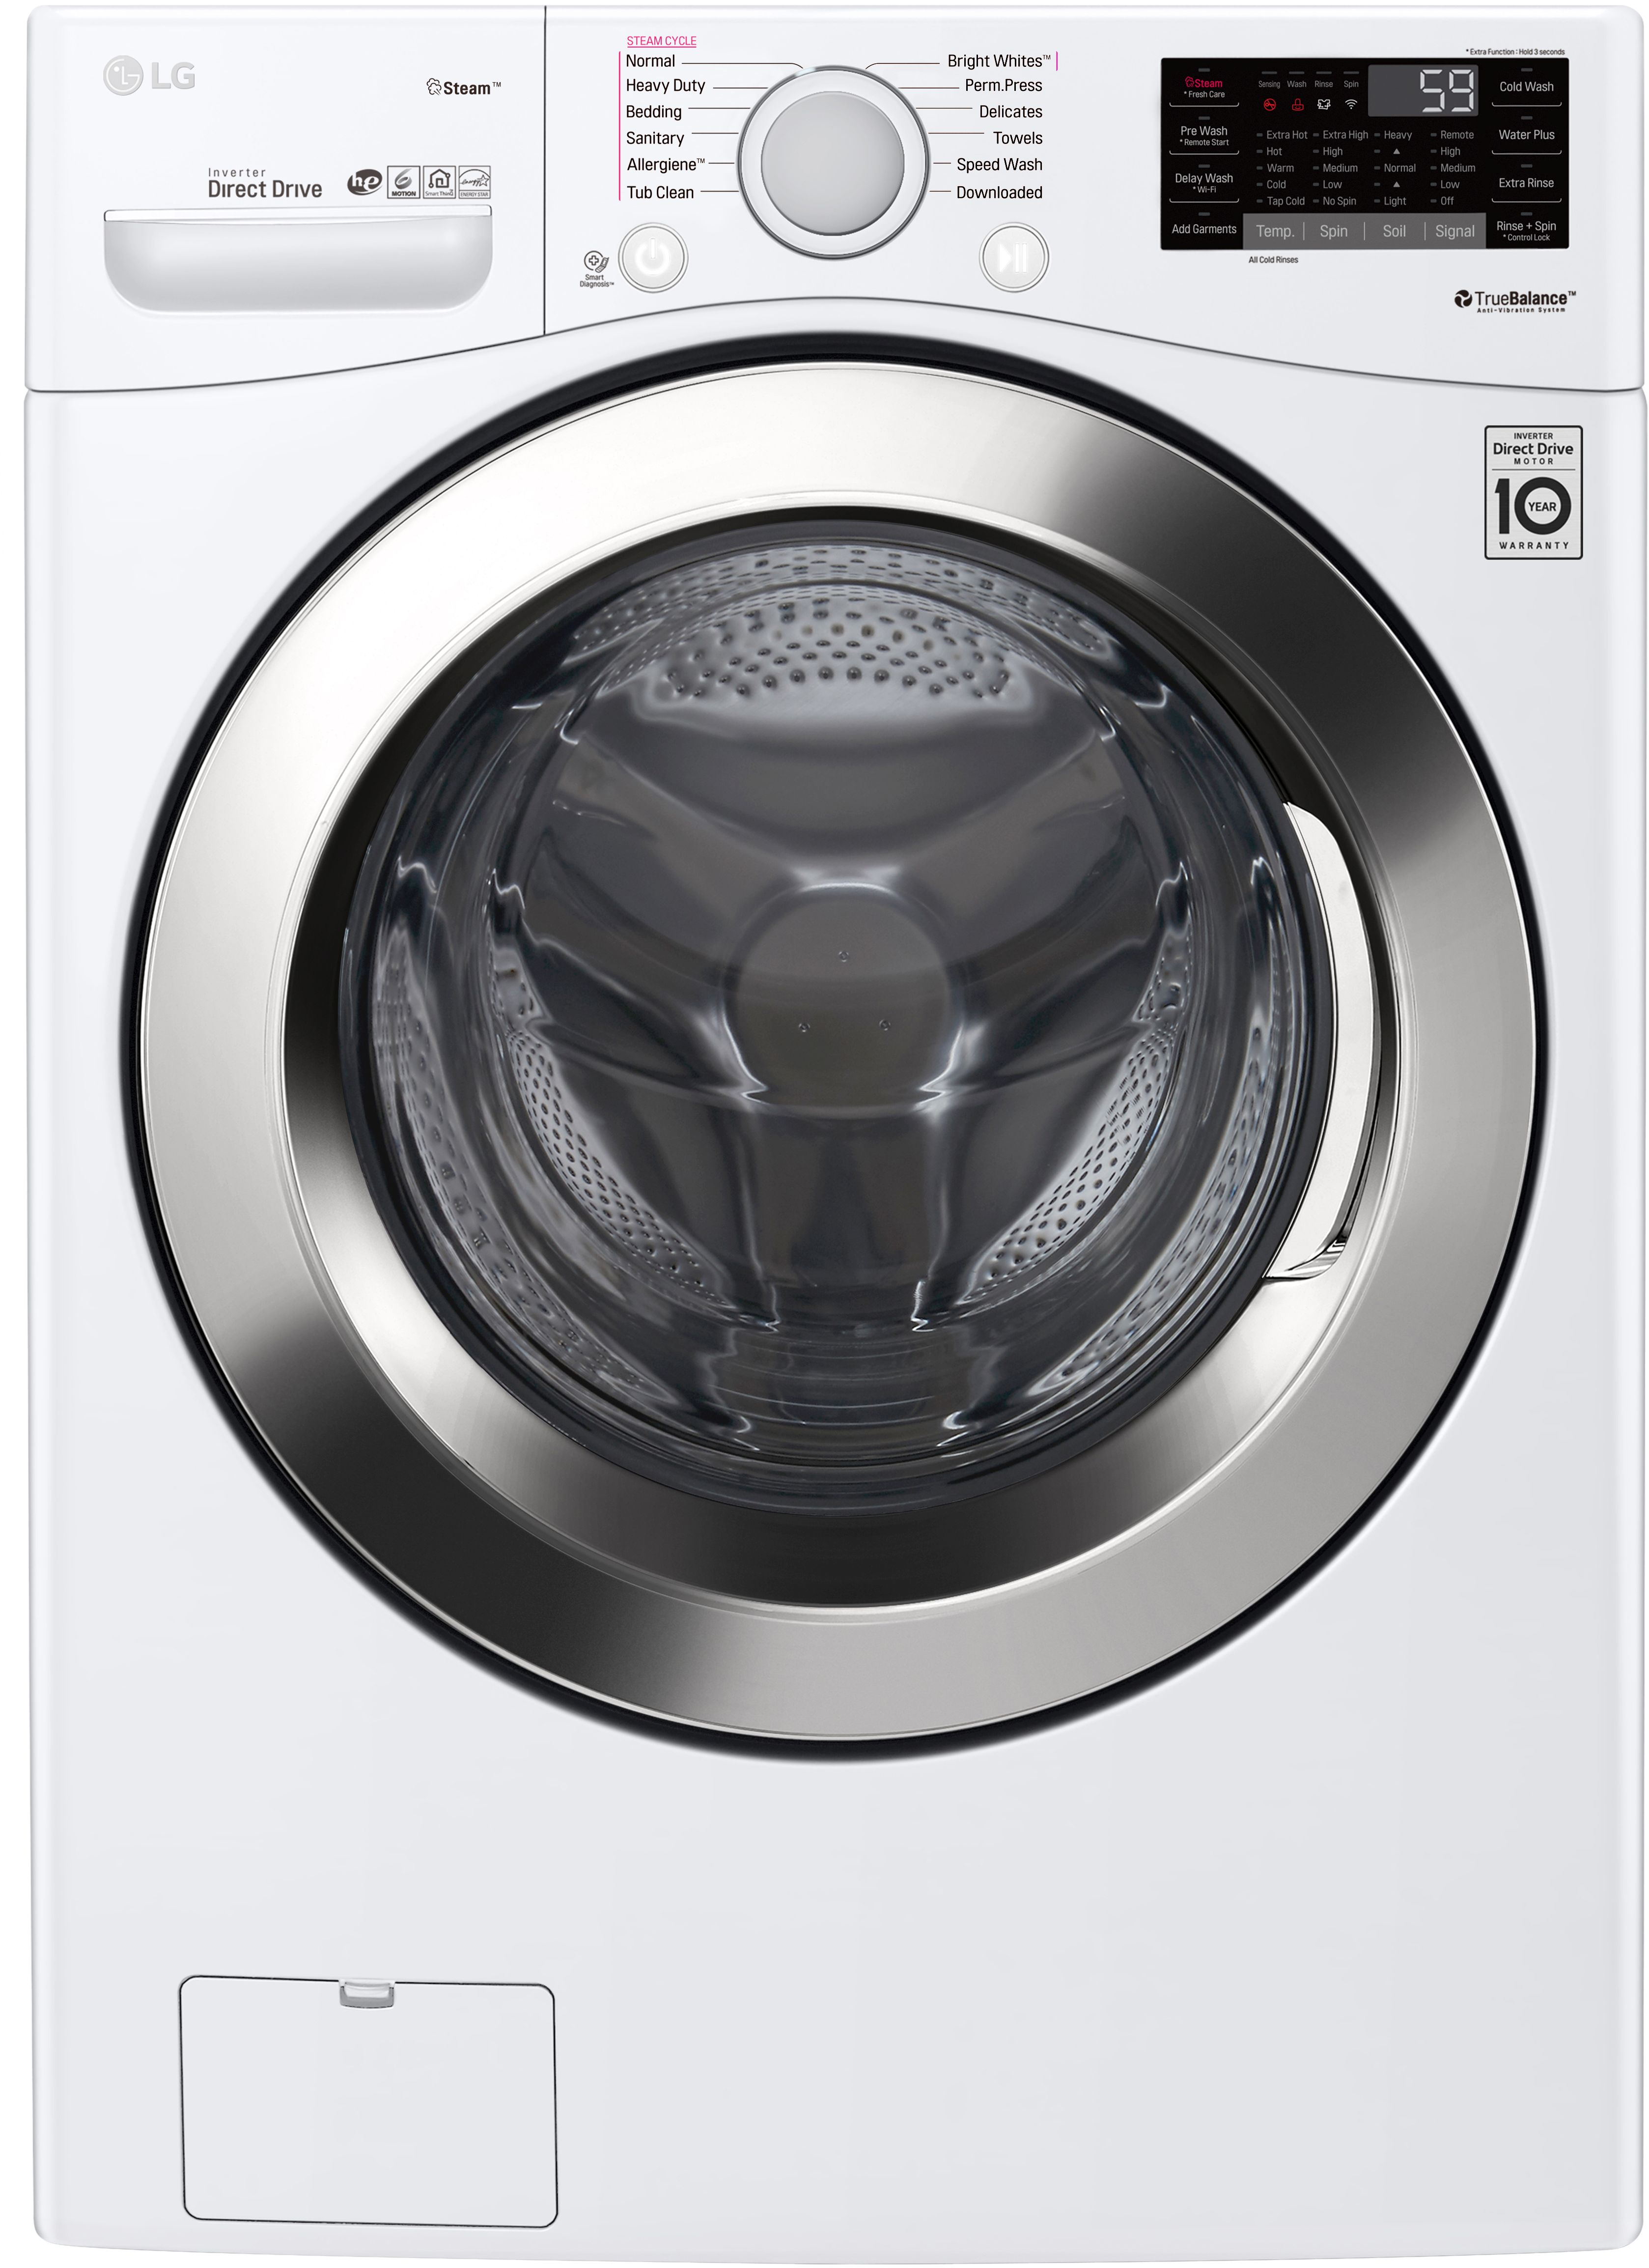 Appliances, Electronics, Mattresses and Water Heaters in Scottsdale